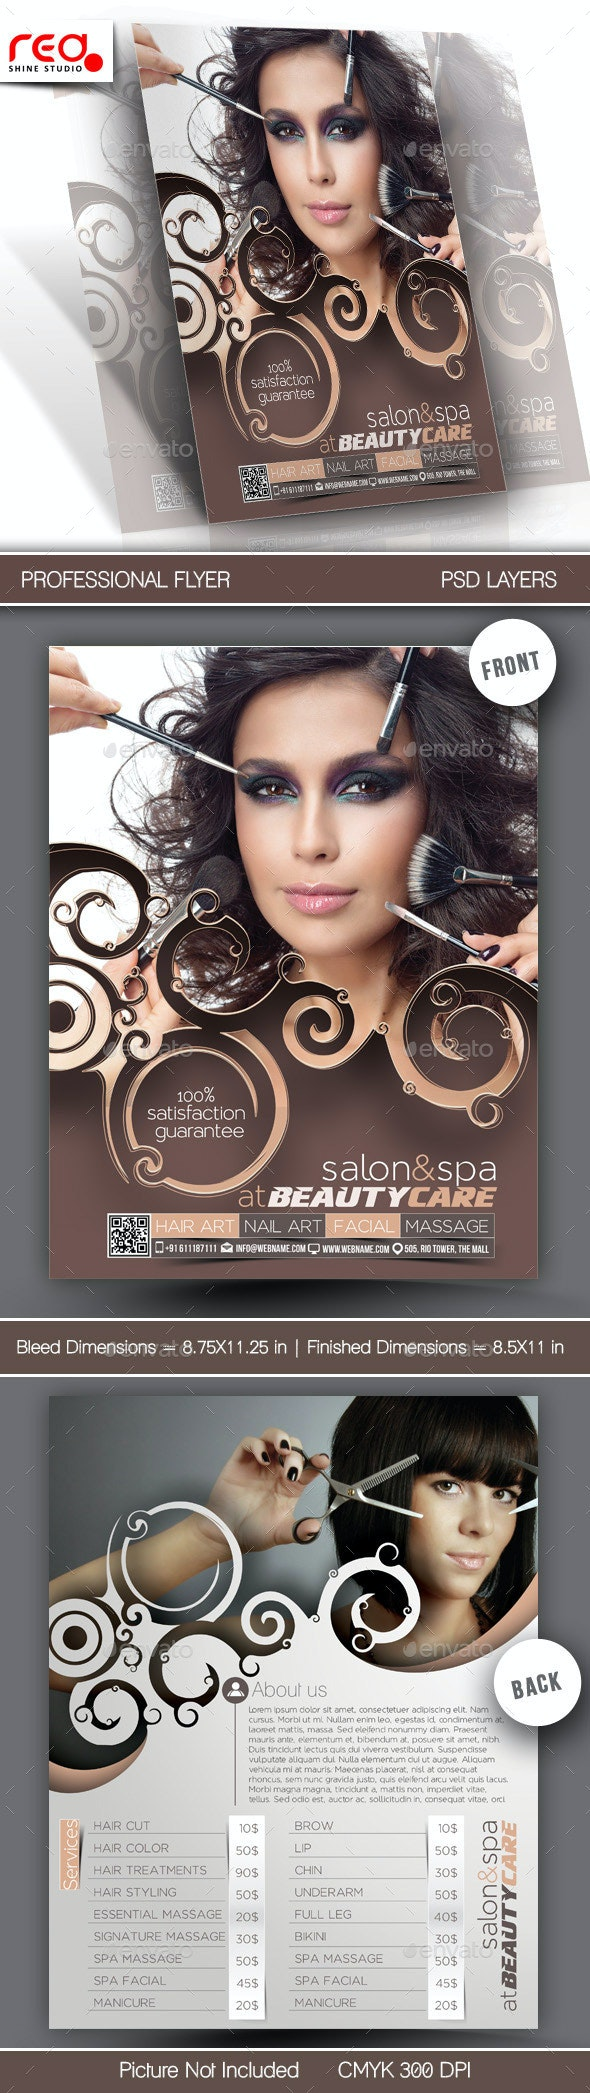 Beauty Care Flyer Template - Commerce Flyers